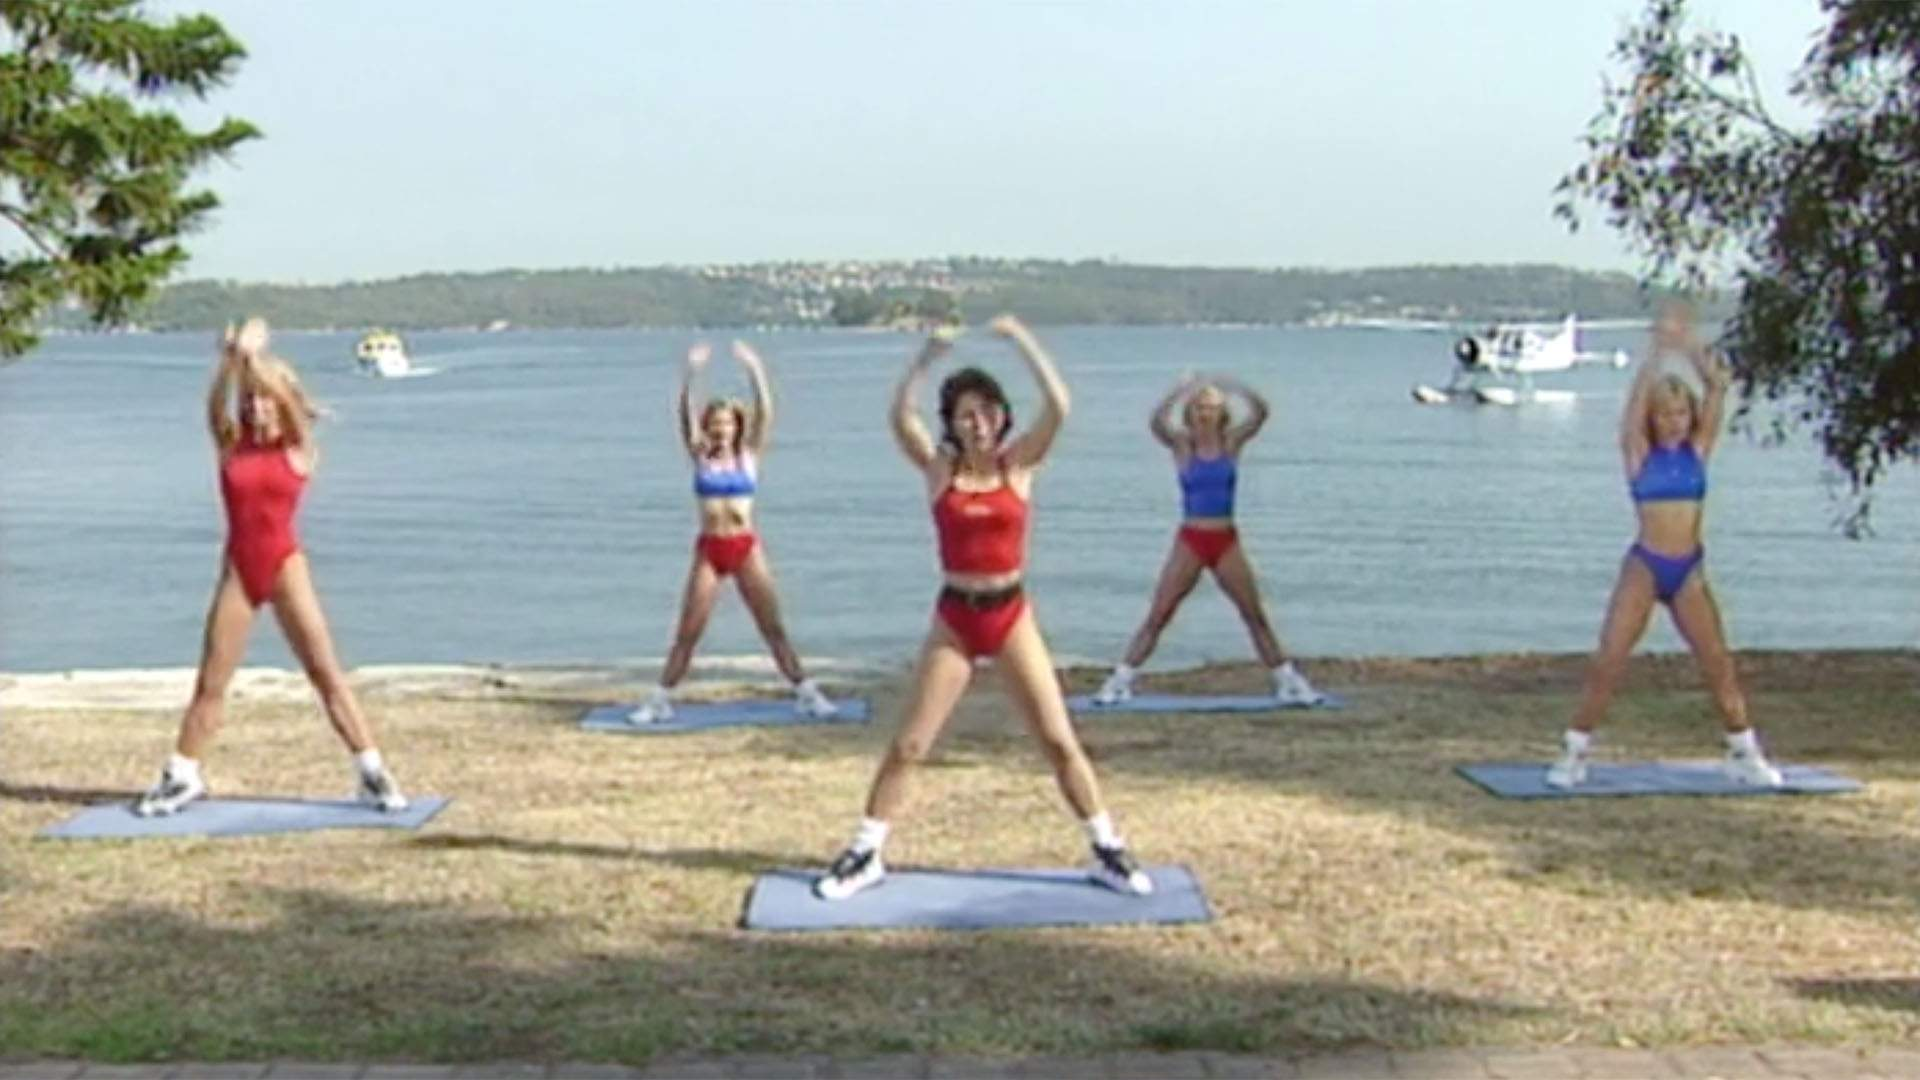 You Can Now Stream Old Episodes of 'Aerobics Oz Style' to Get Your Retro Fitness Fix